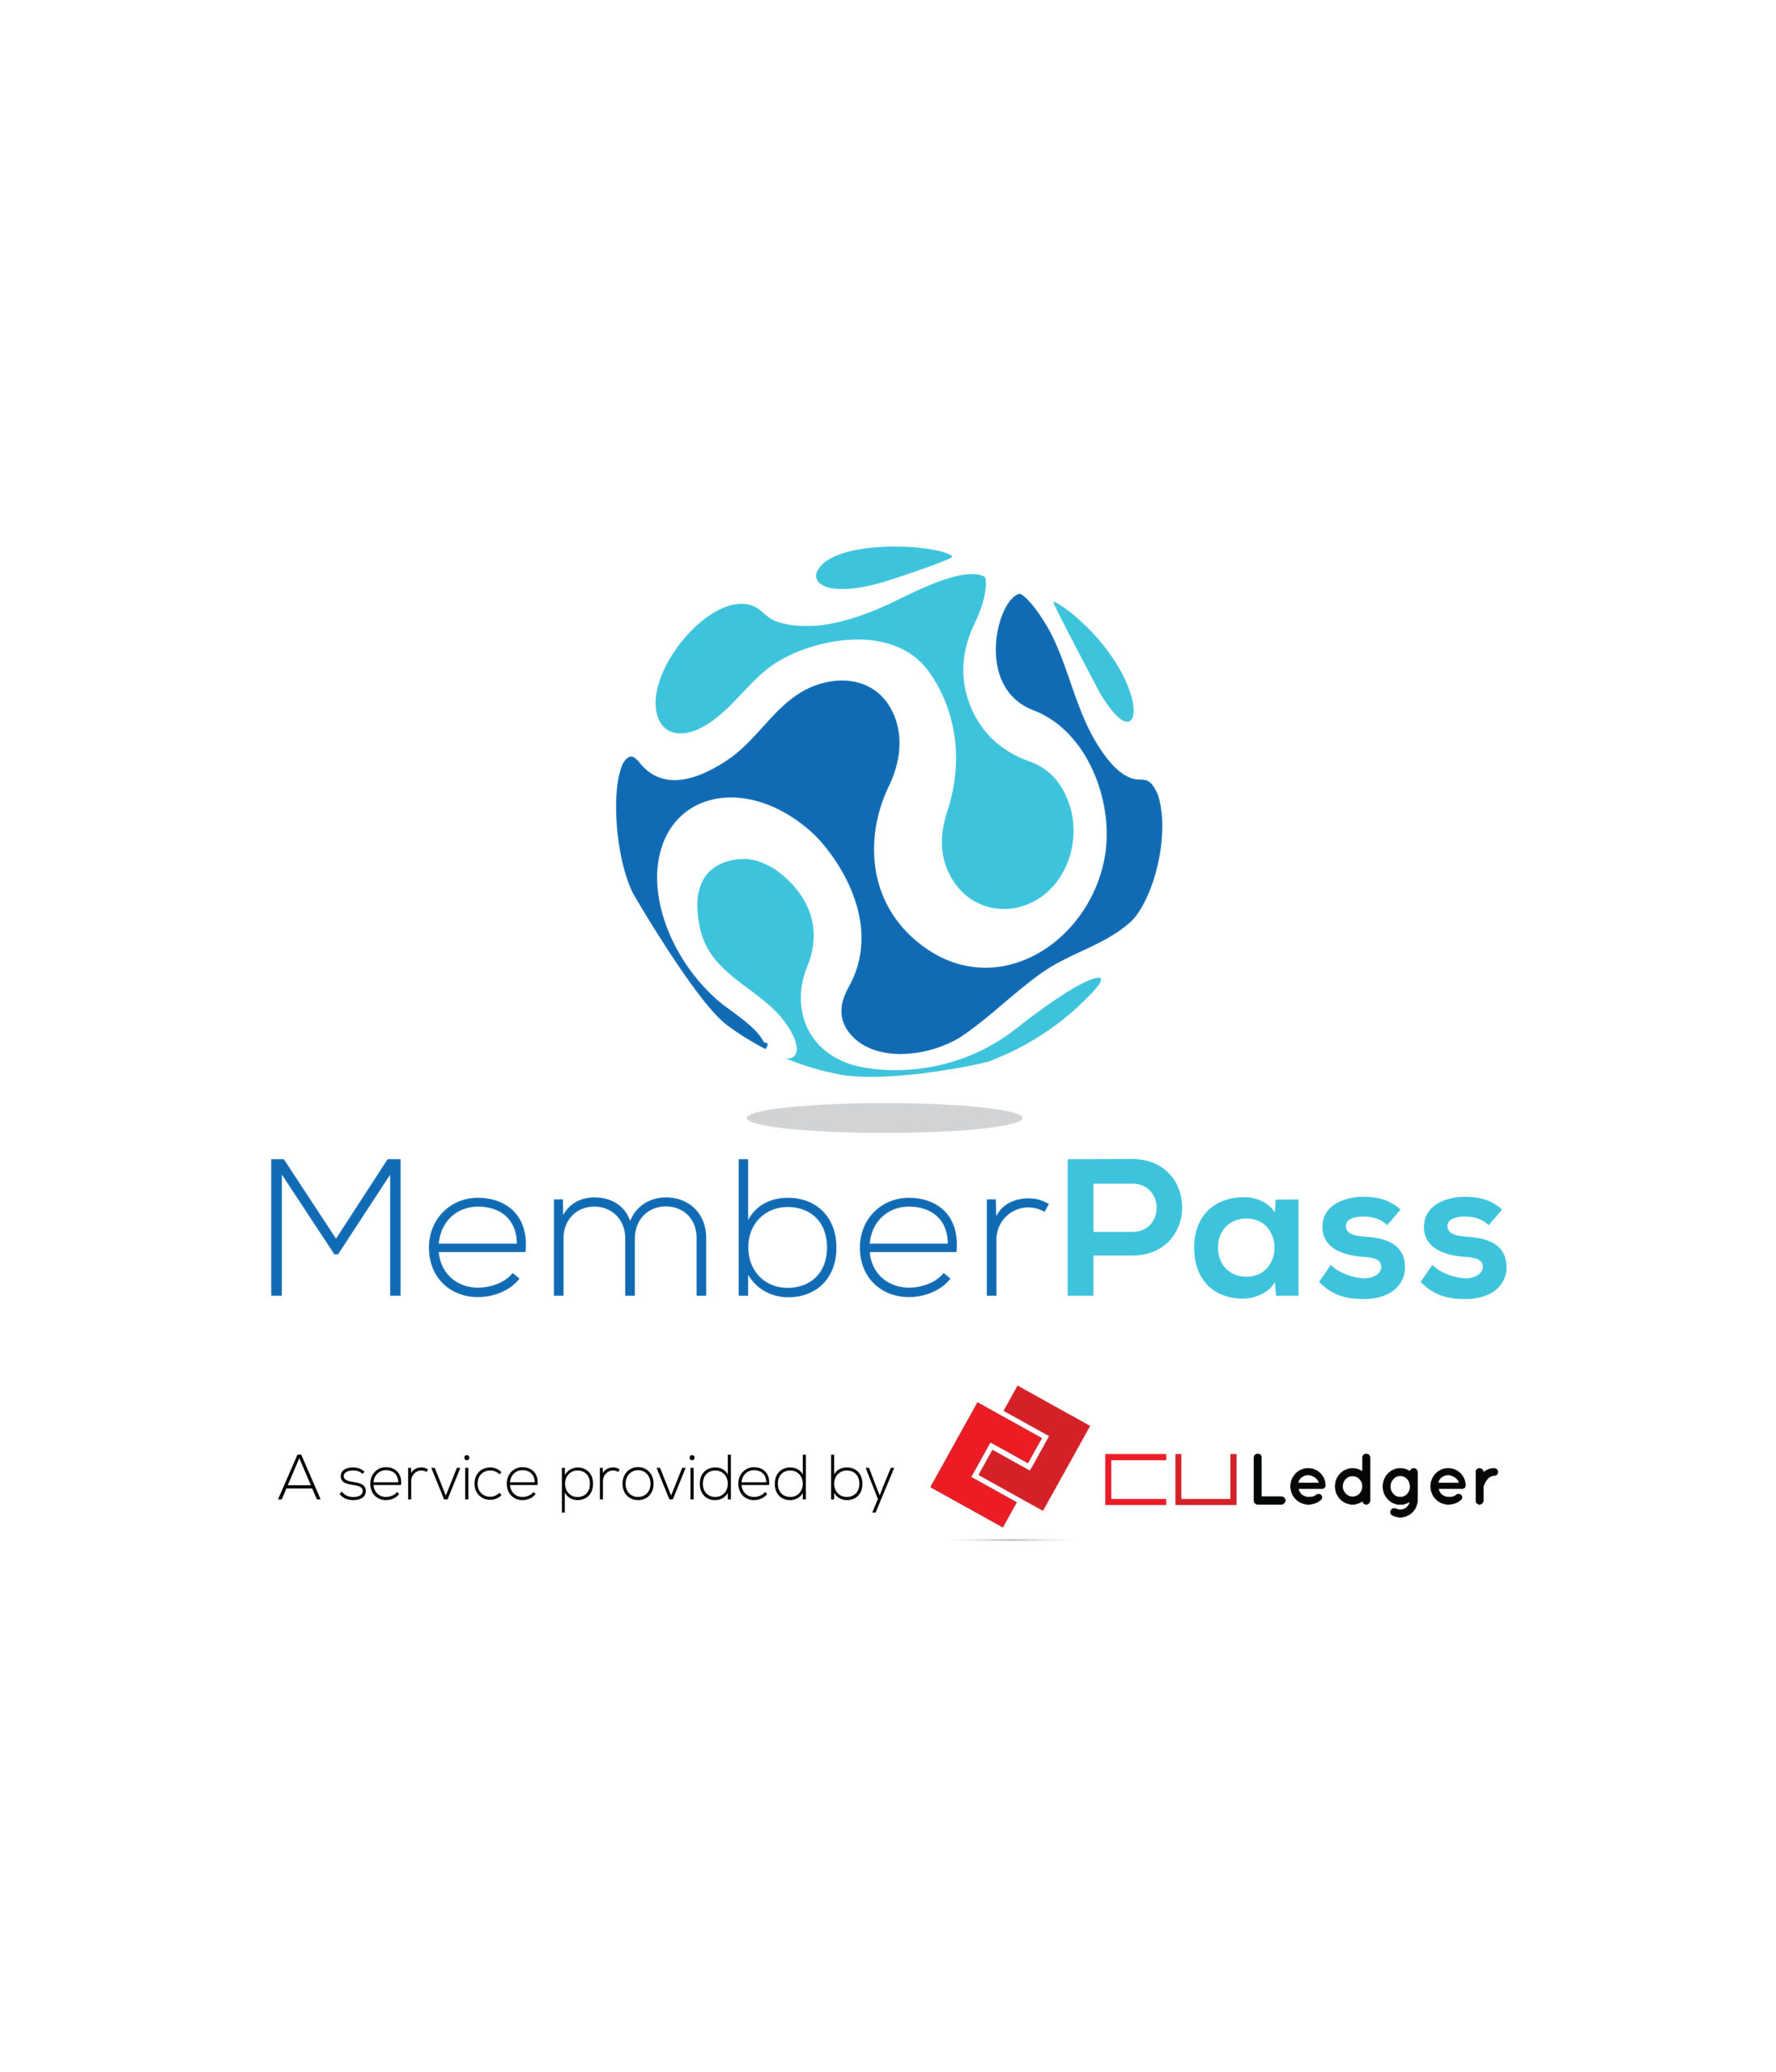 MemberPass, Provided by CULedger Logo